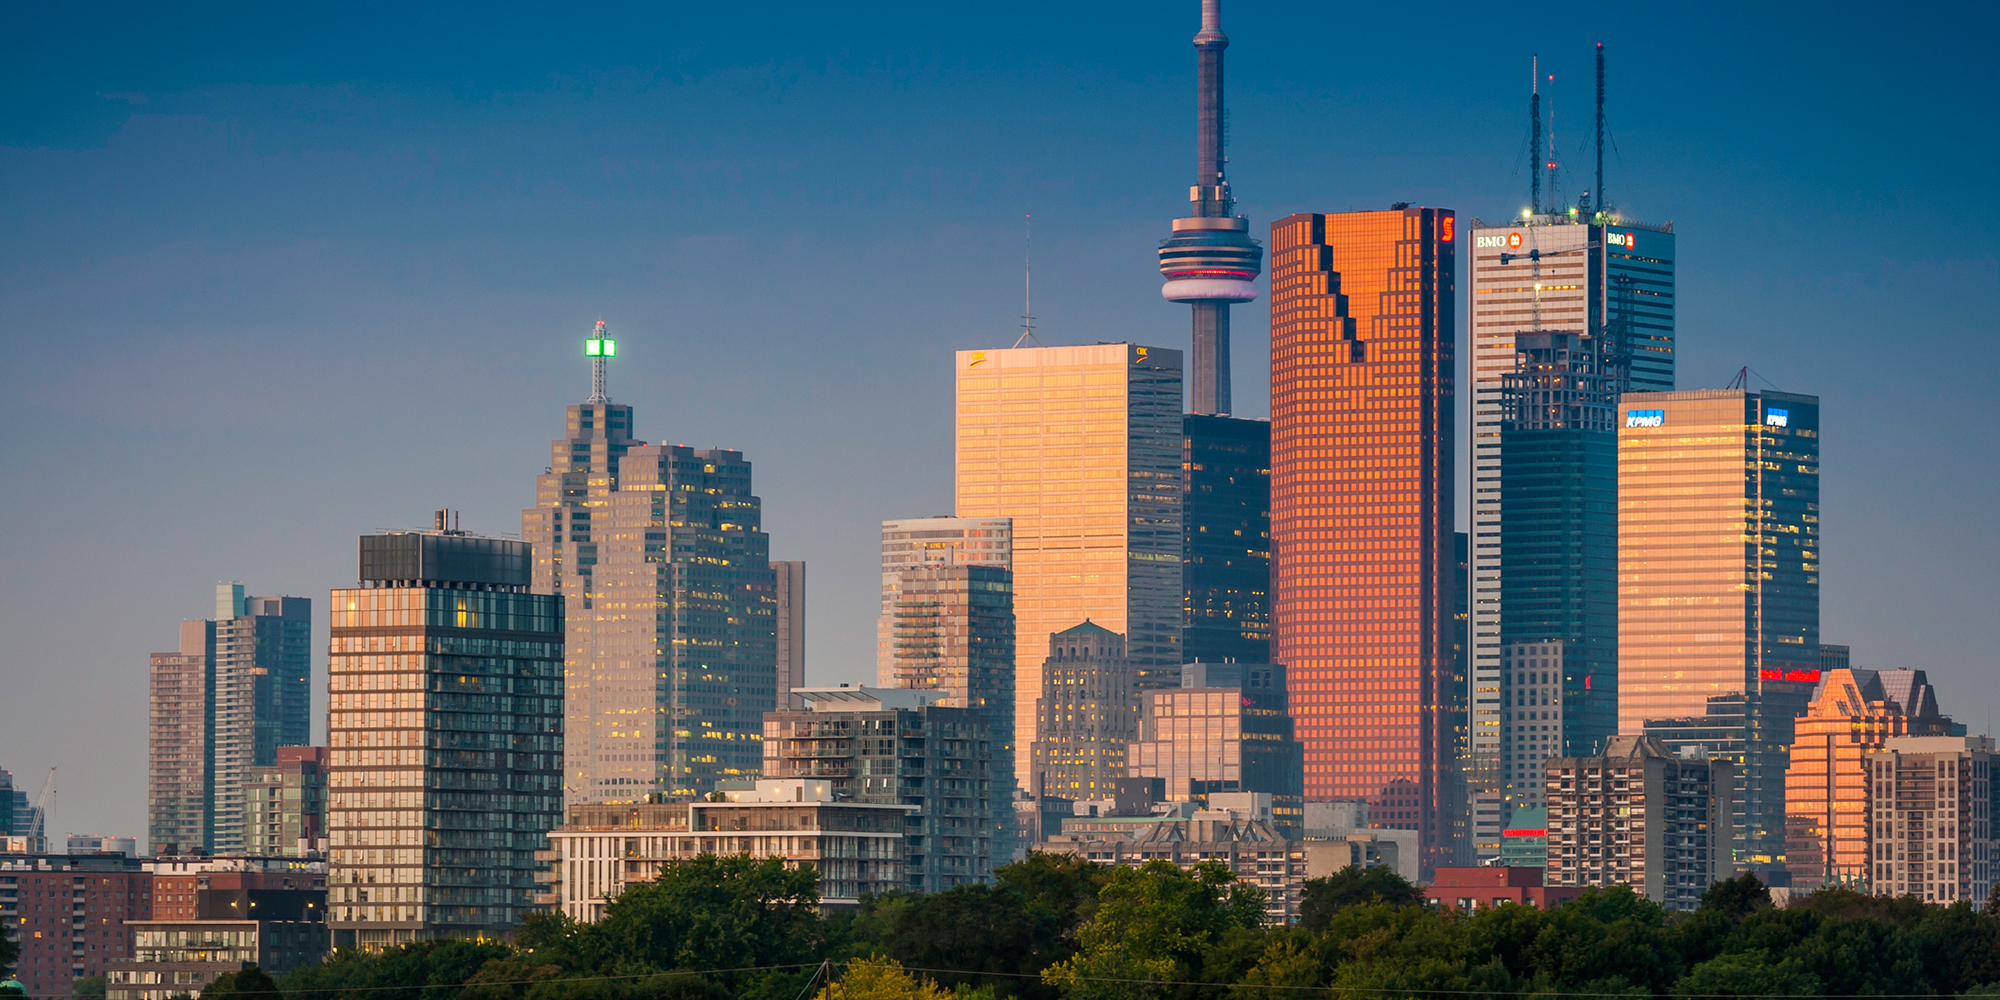 Toronto's fintech sector is exploding with jobs